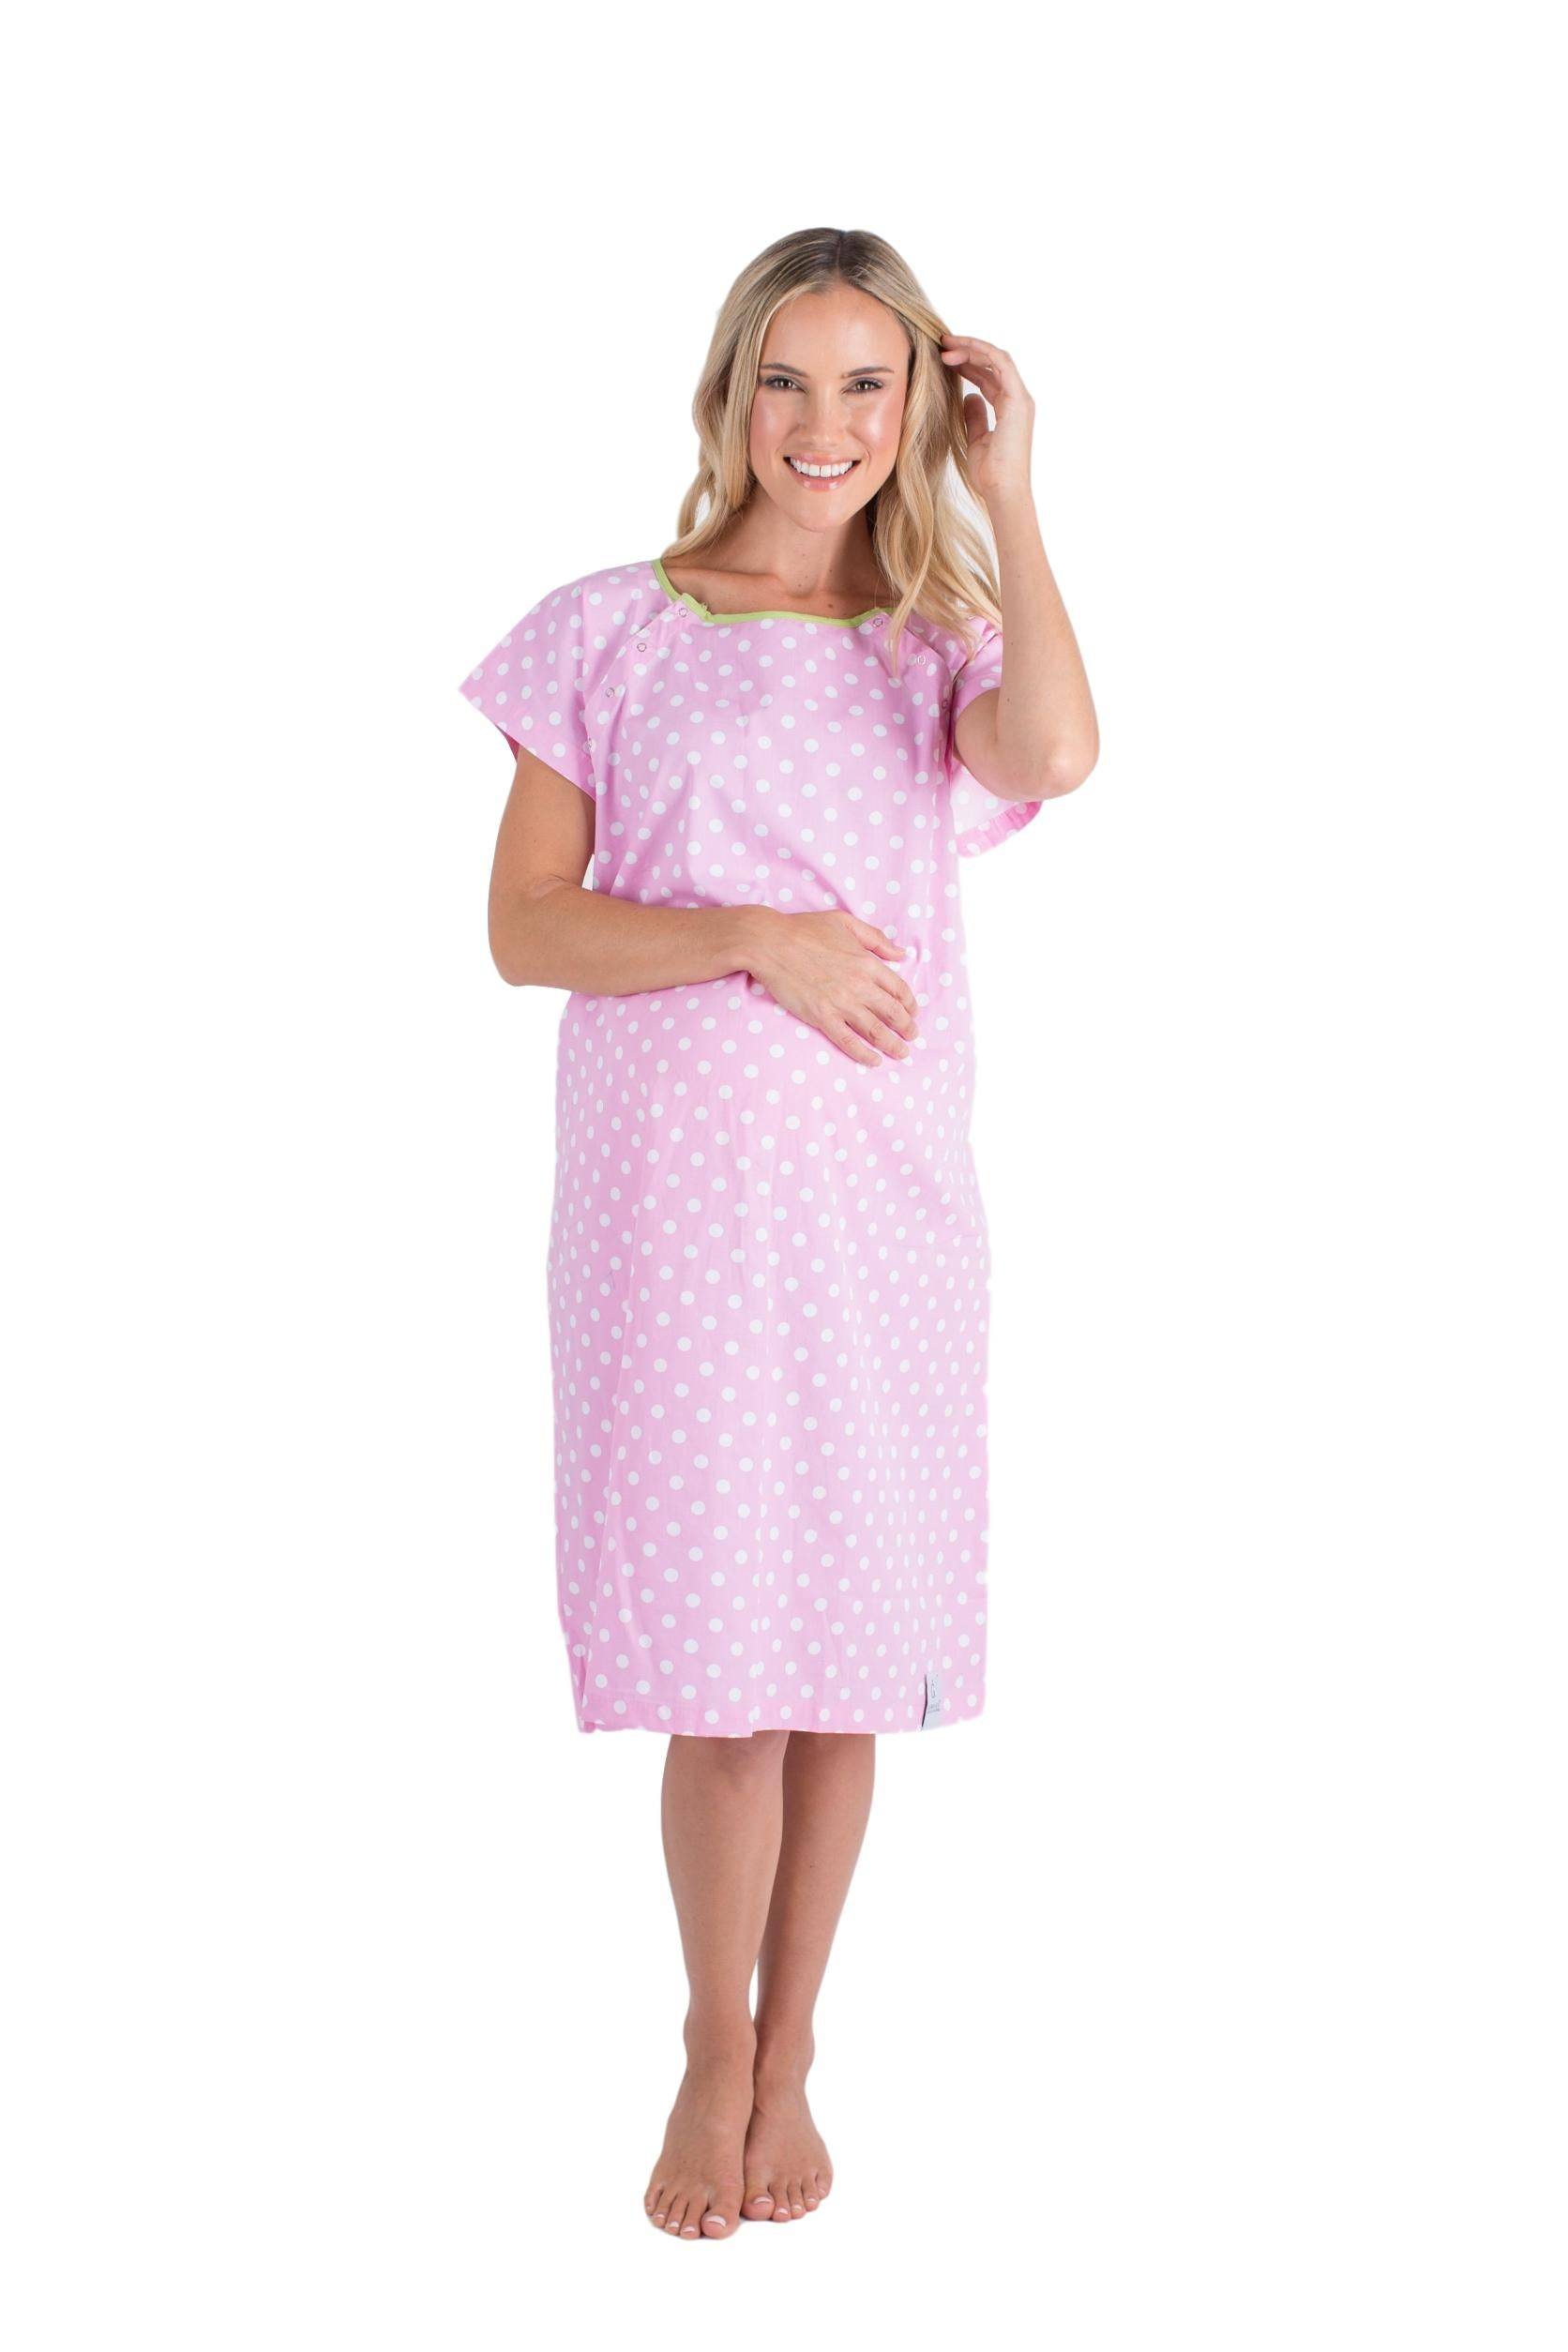 Pink Dotted Labor and Delivery Hospital Gowns for Maternity ...